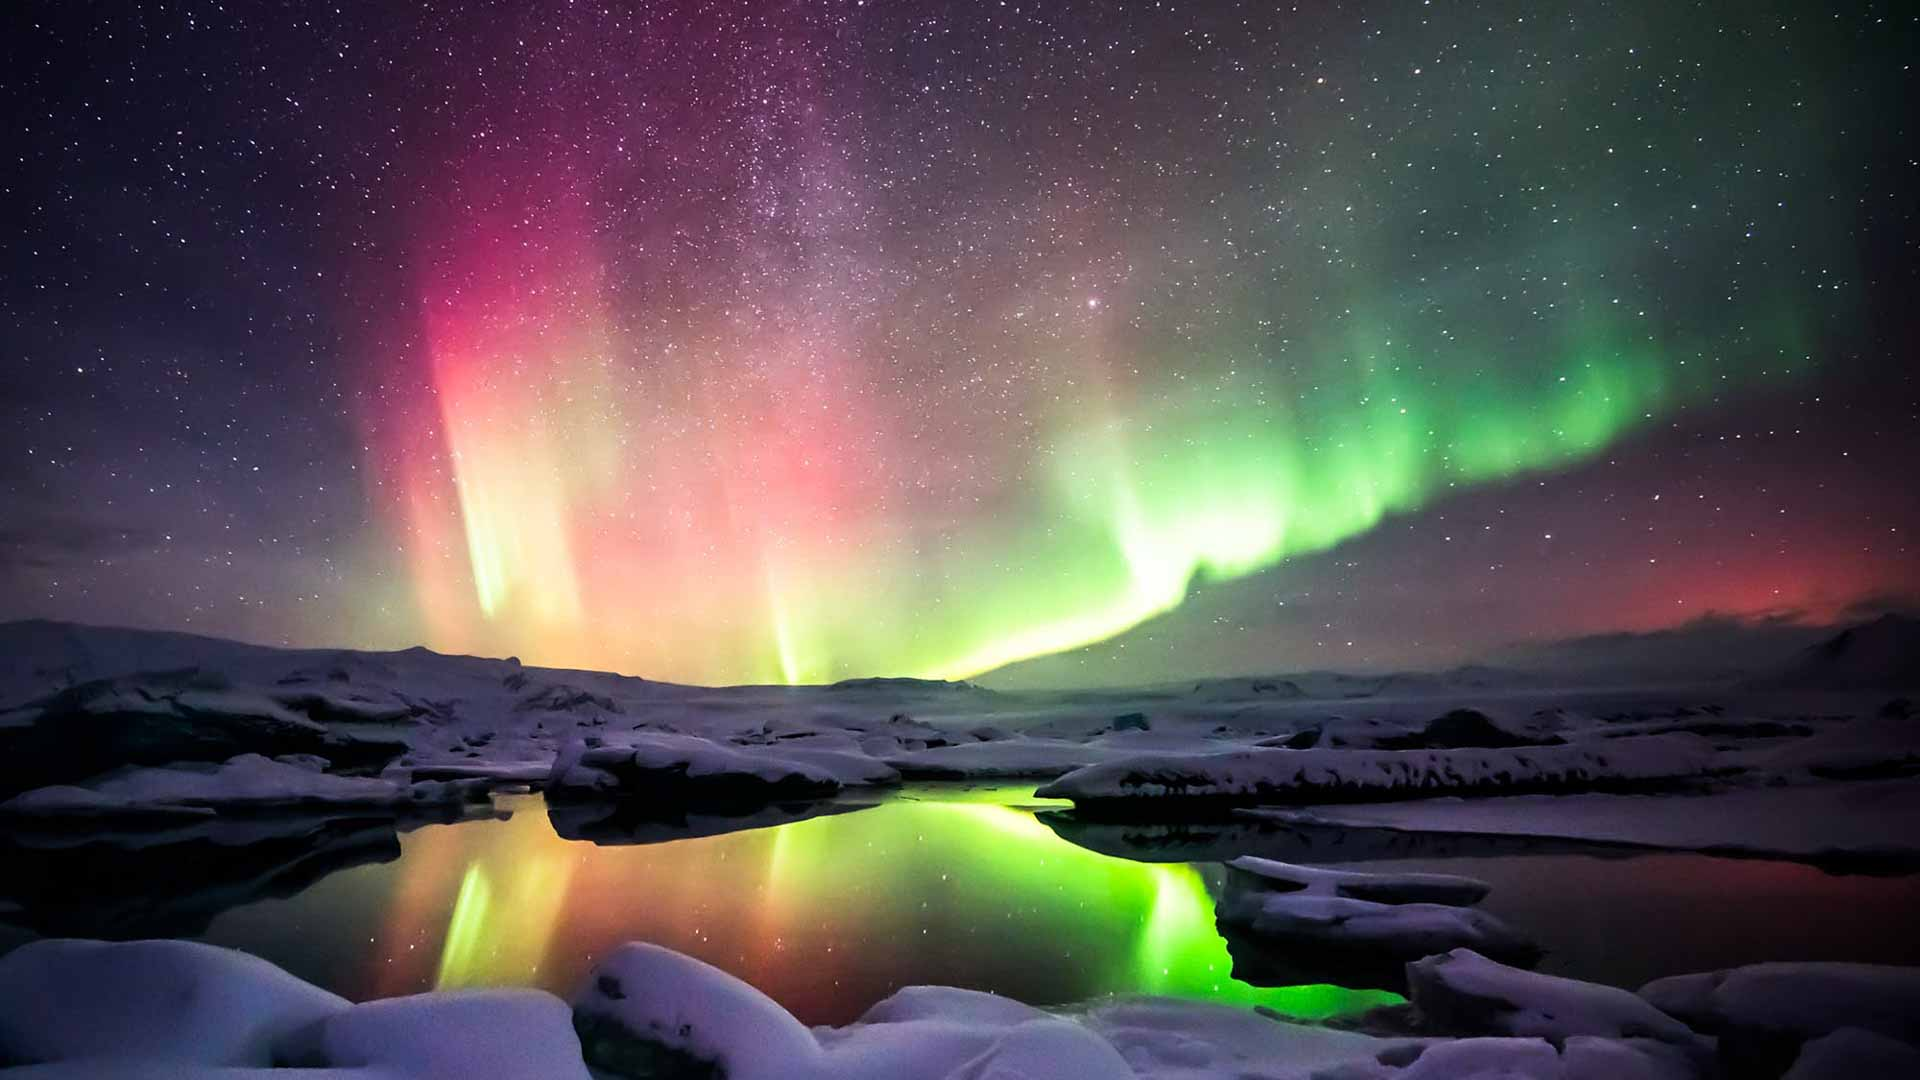 Colorful Northern Lights Dancing Over a Lake With Snow Covered Rocks in Iceland